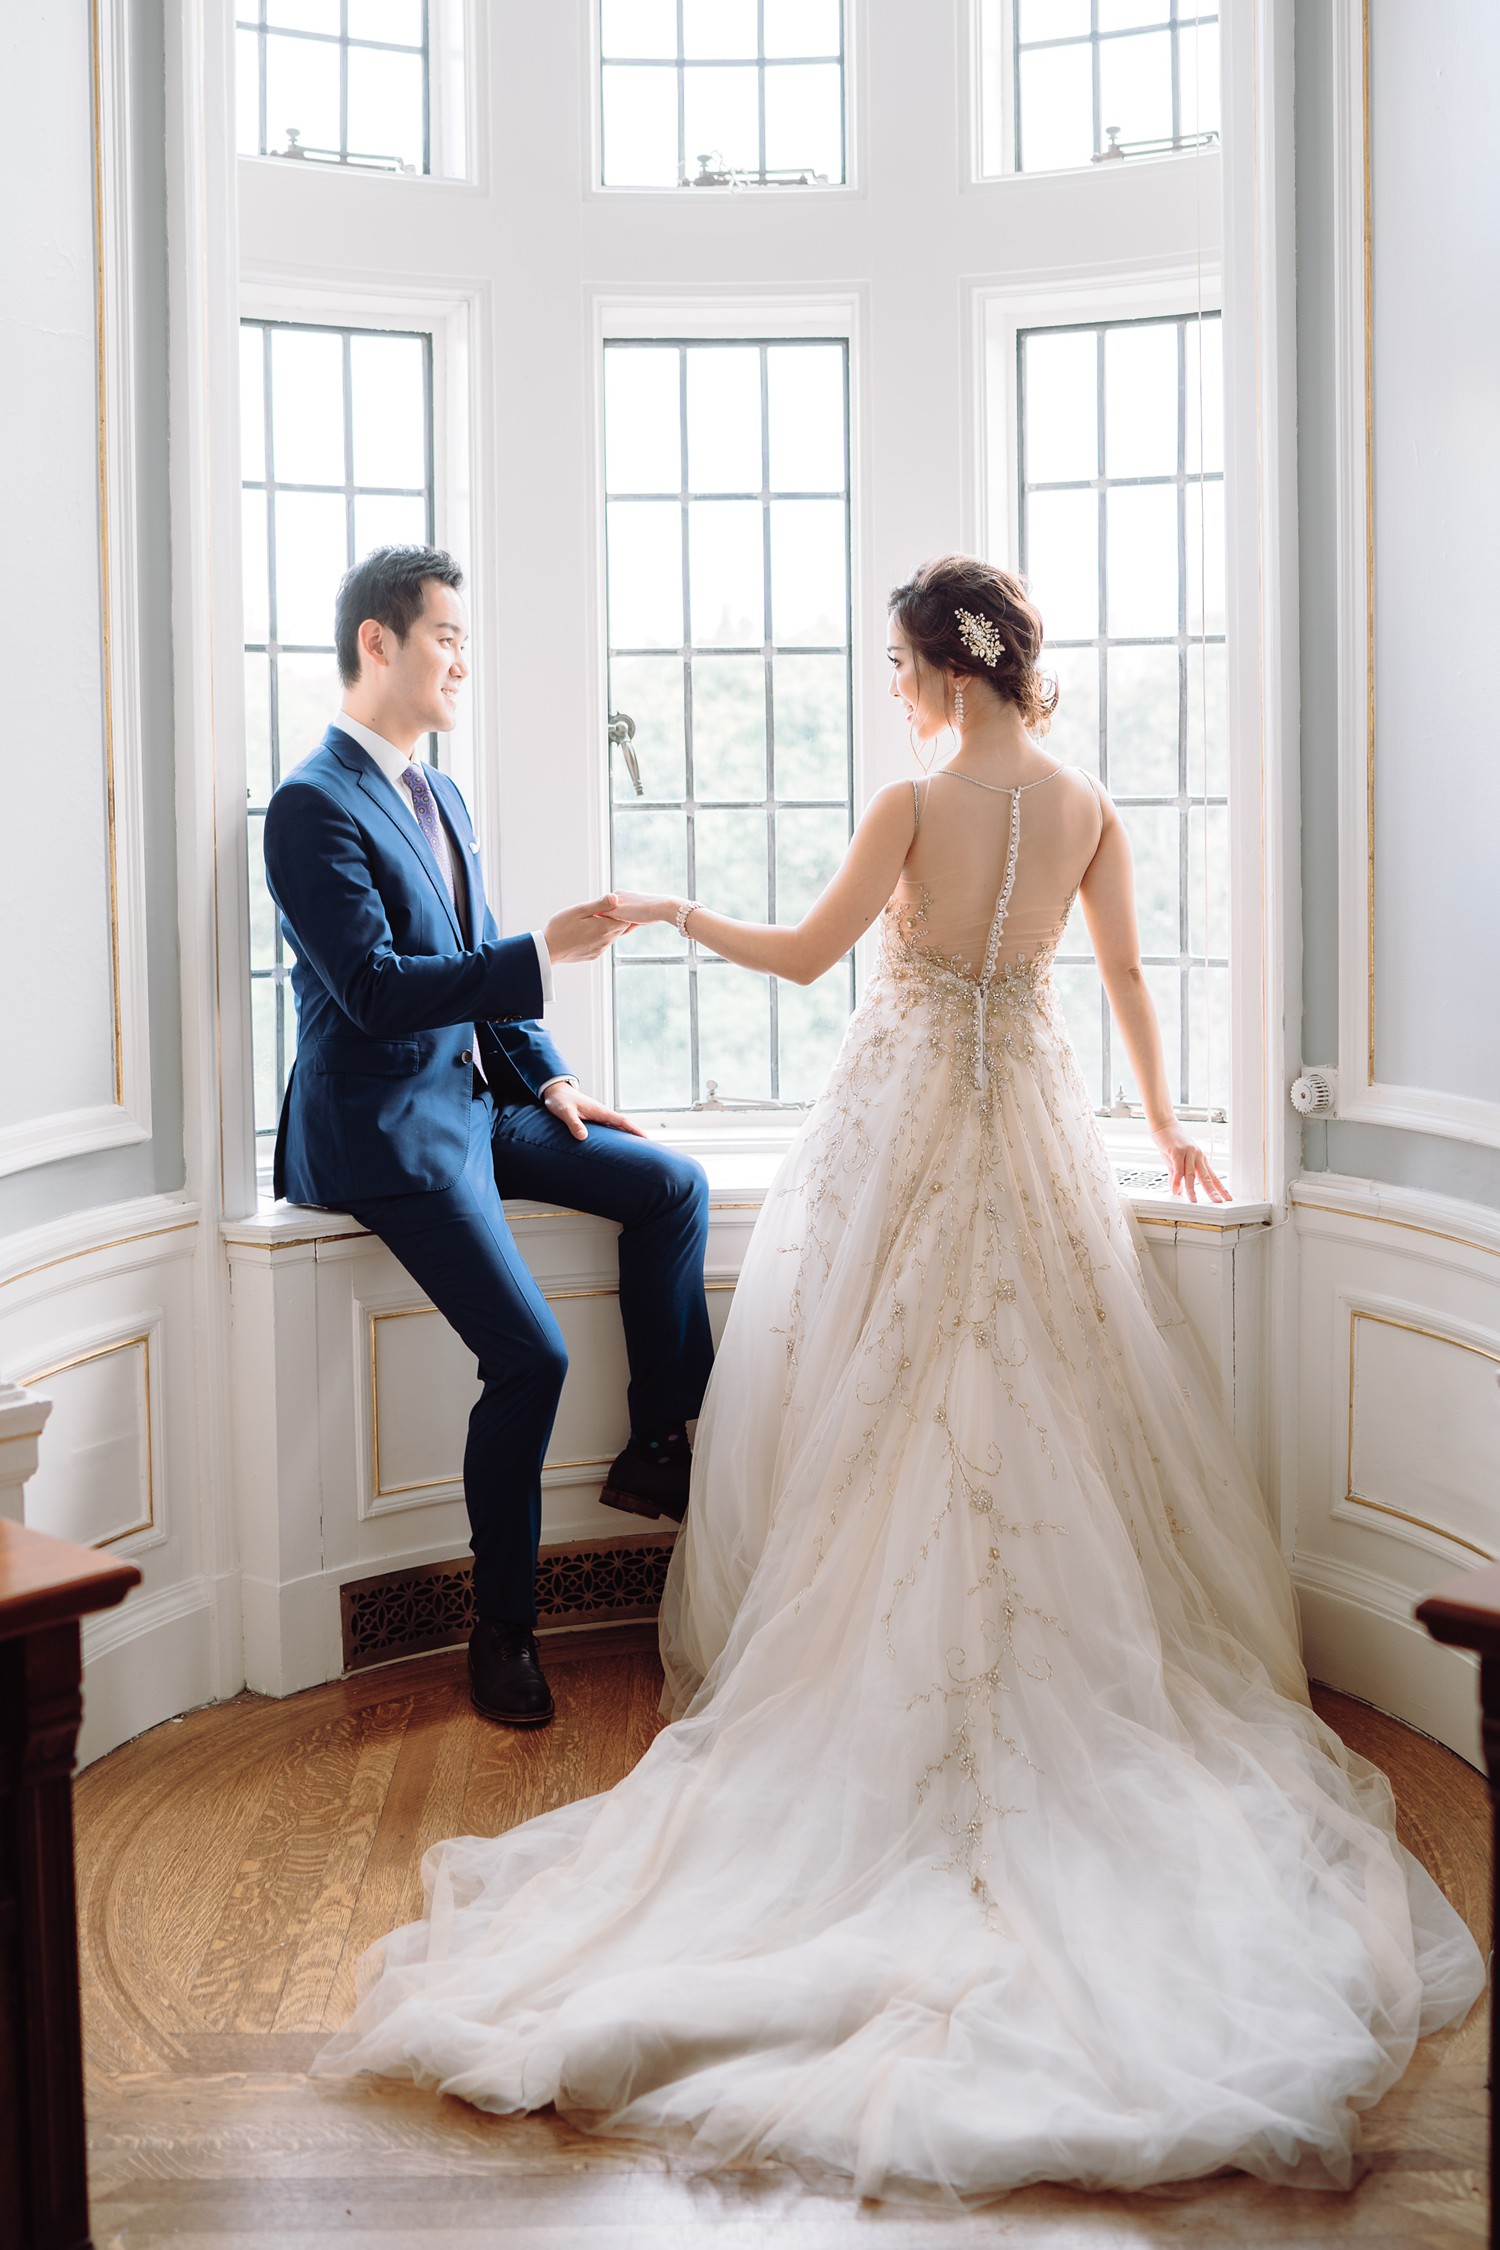 Bridal Suite with Bride and Groom at Castle Casa Loma Wedding Toronto Wedding Photographer